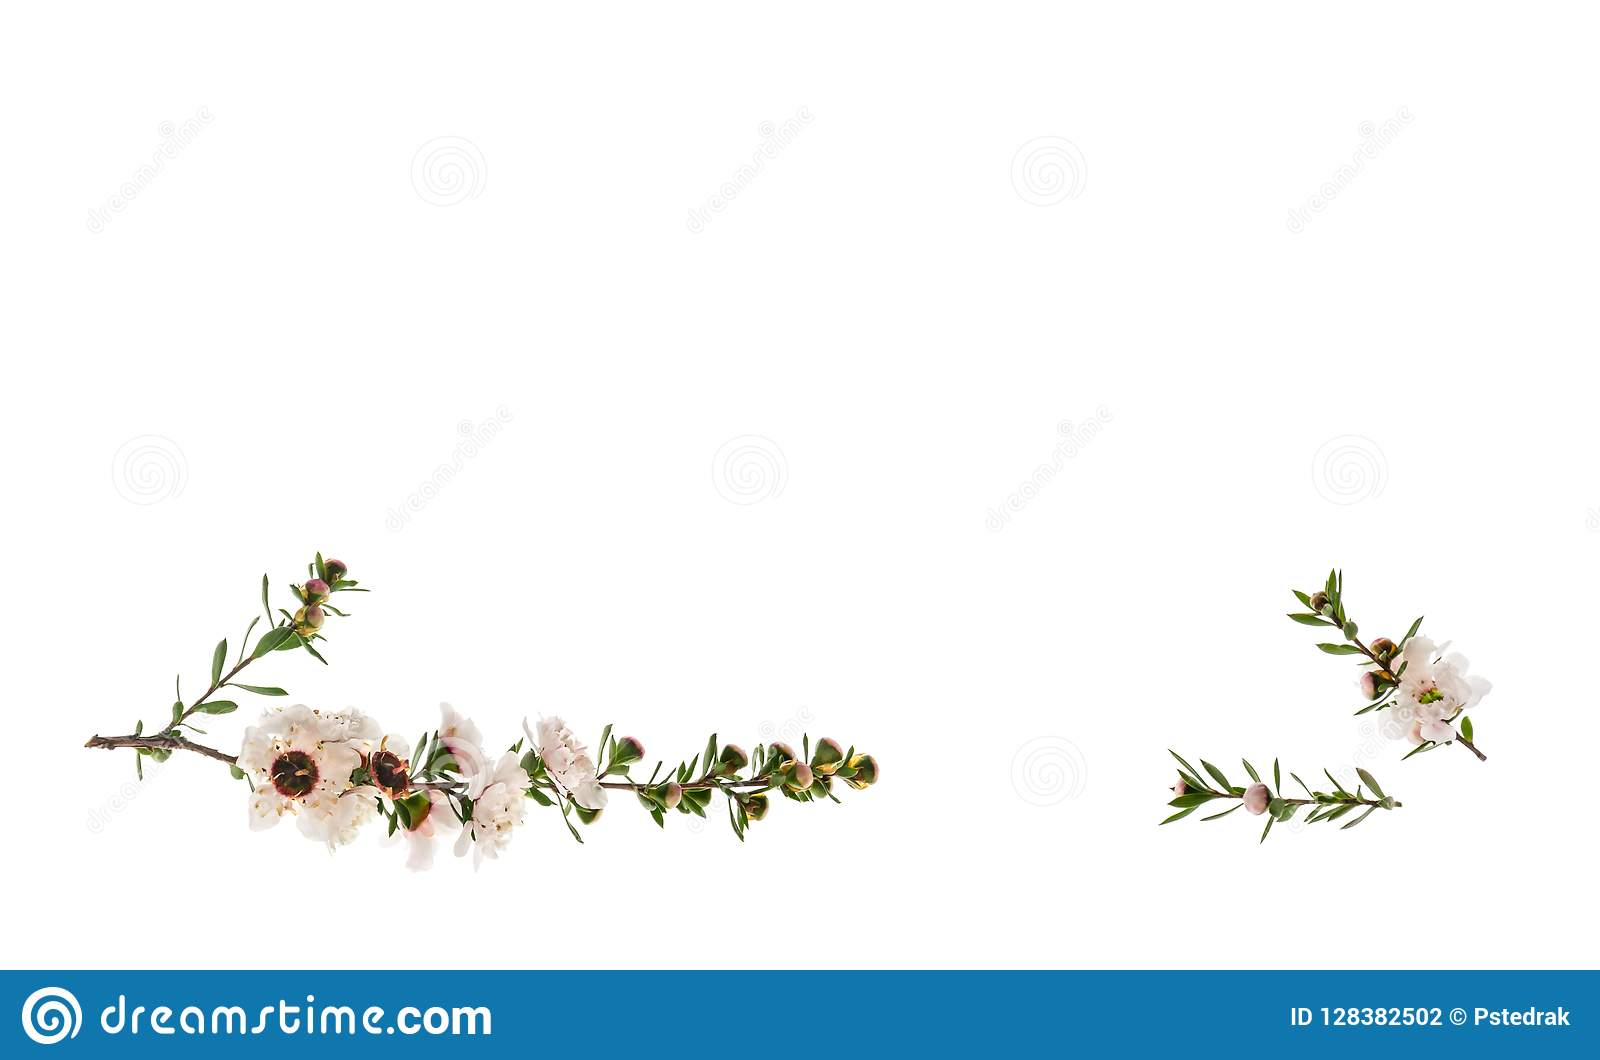 White manuka tree flowers isolated on white background with copy space above